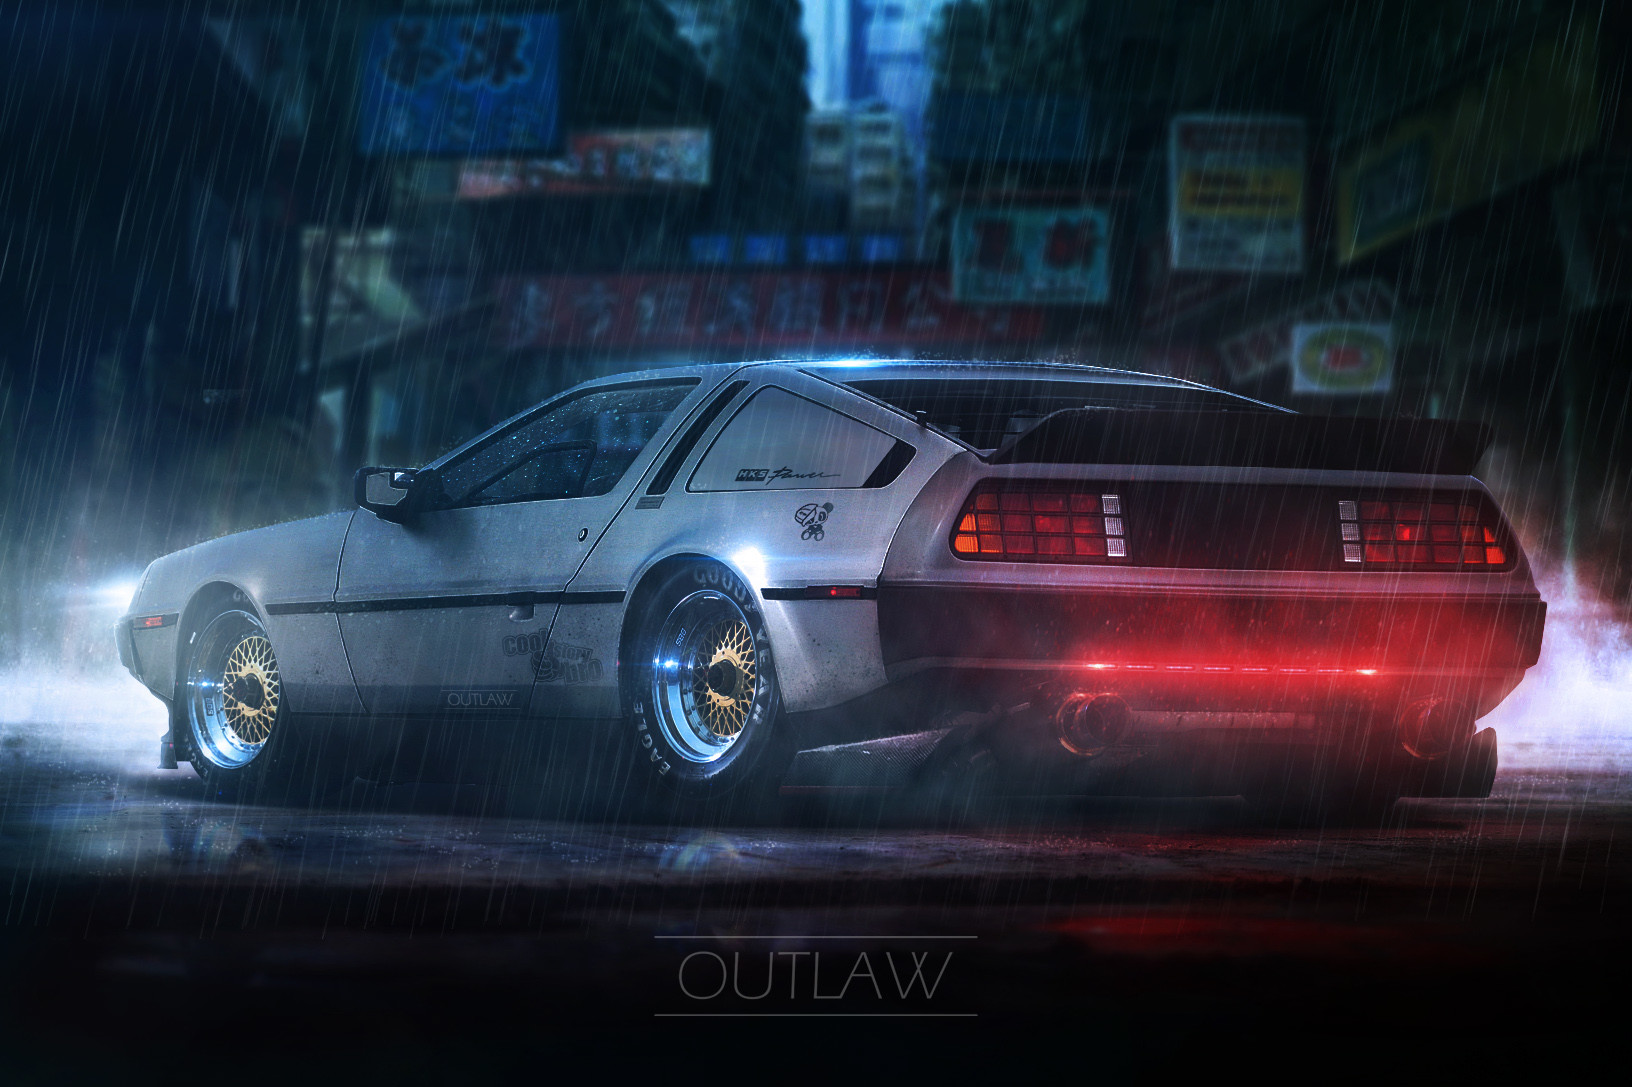 Retro Car Home Wallpaper Car Jdm Delorean Neon Smoke Fan Art Fantasy Art